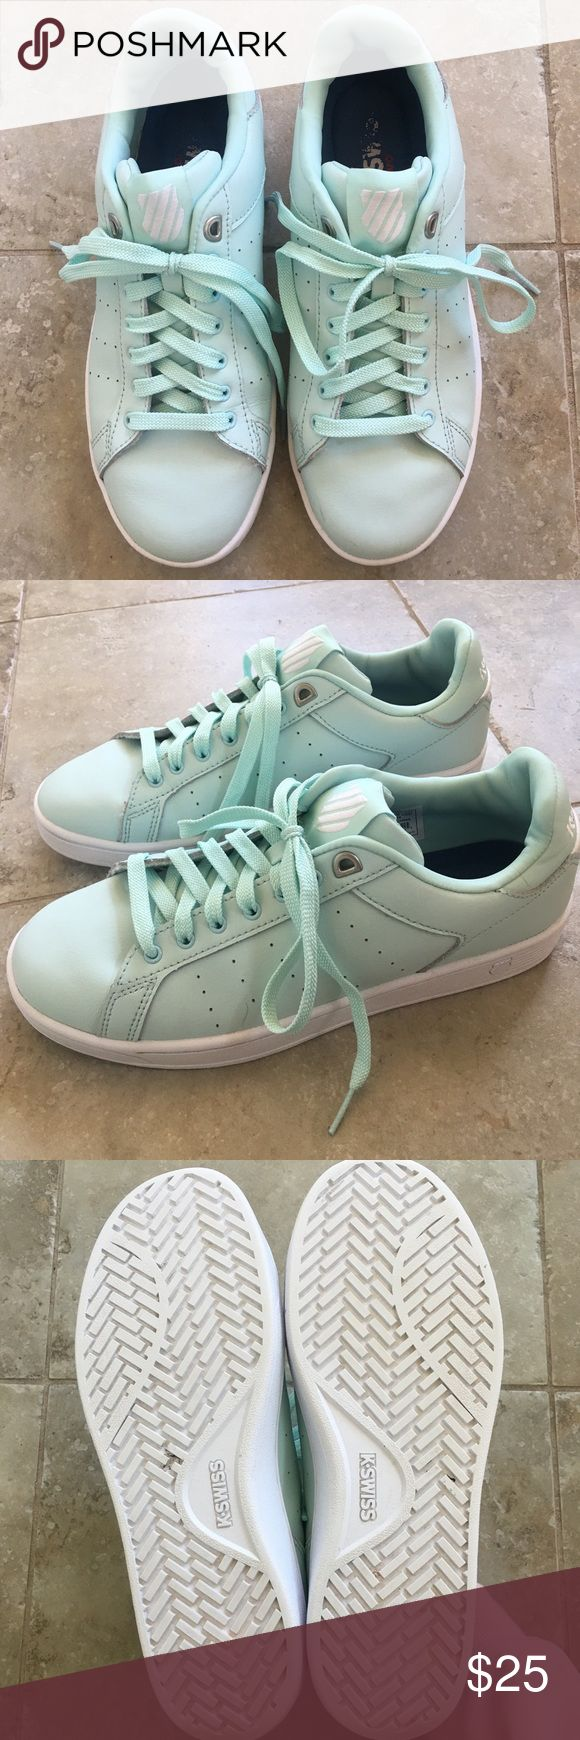 K Swiss shoes Women's K Swiss shoes.  Size 8.5.  Used, still good condition.  A few scuffs on the outsides and on soles.  Slight wear on the bottom soles and insoles as shown in photos.  No shoe box. K Swiss Shoes Sneakers